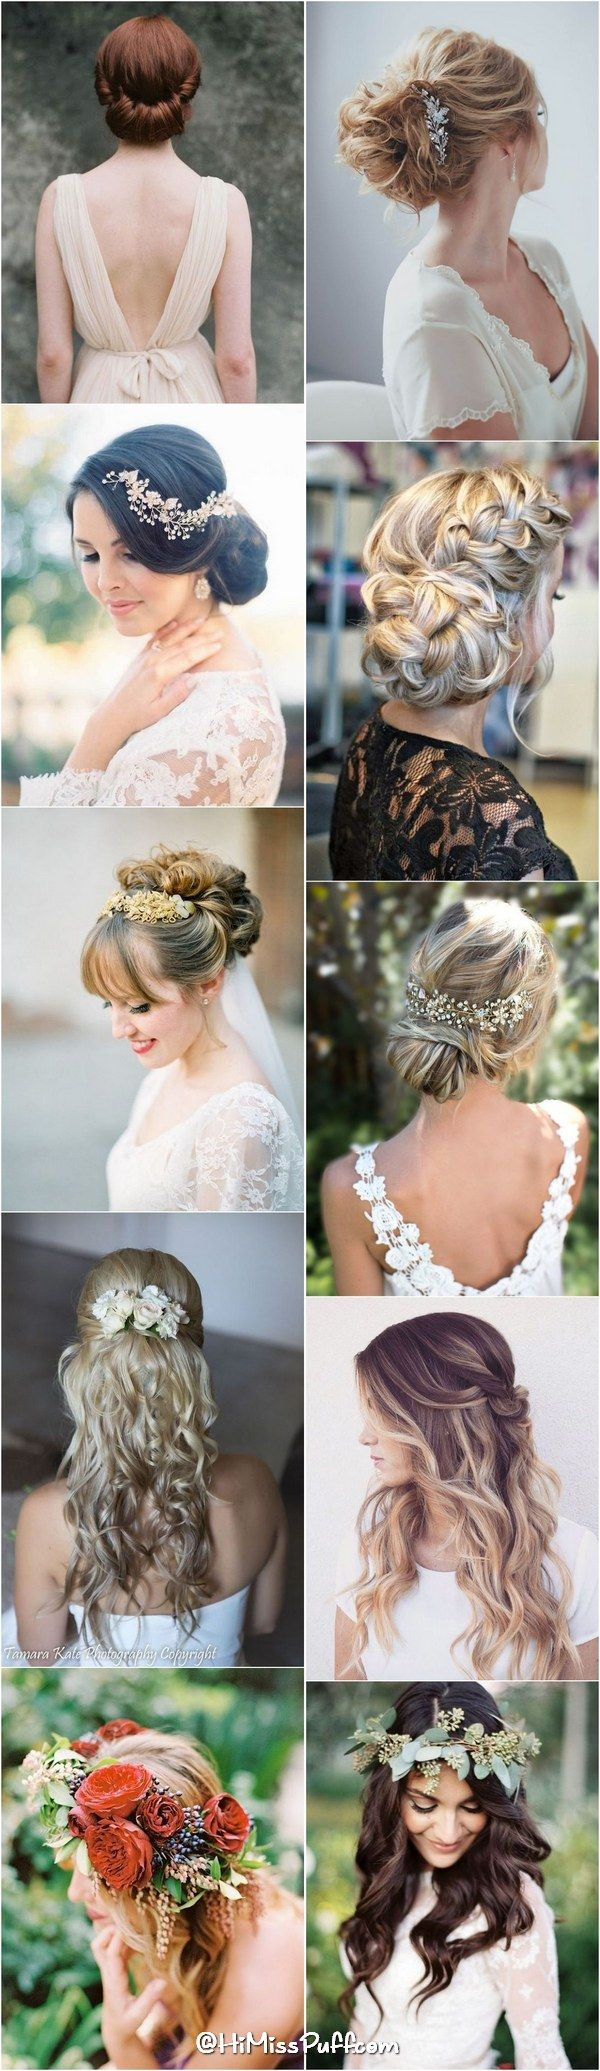 200 Bridal Wedding Hairstyles for Long Hair That Will Inspire / http://www.himisspuff.com/bridal-wedding-hairstyles-for-long-hair/